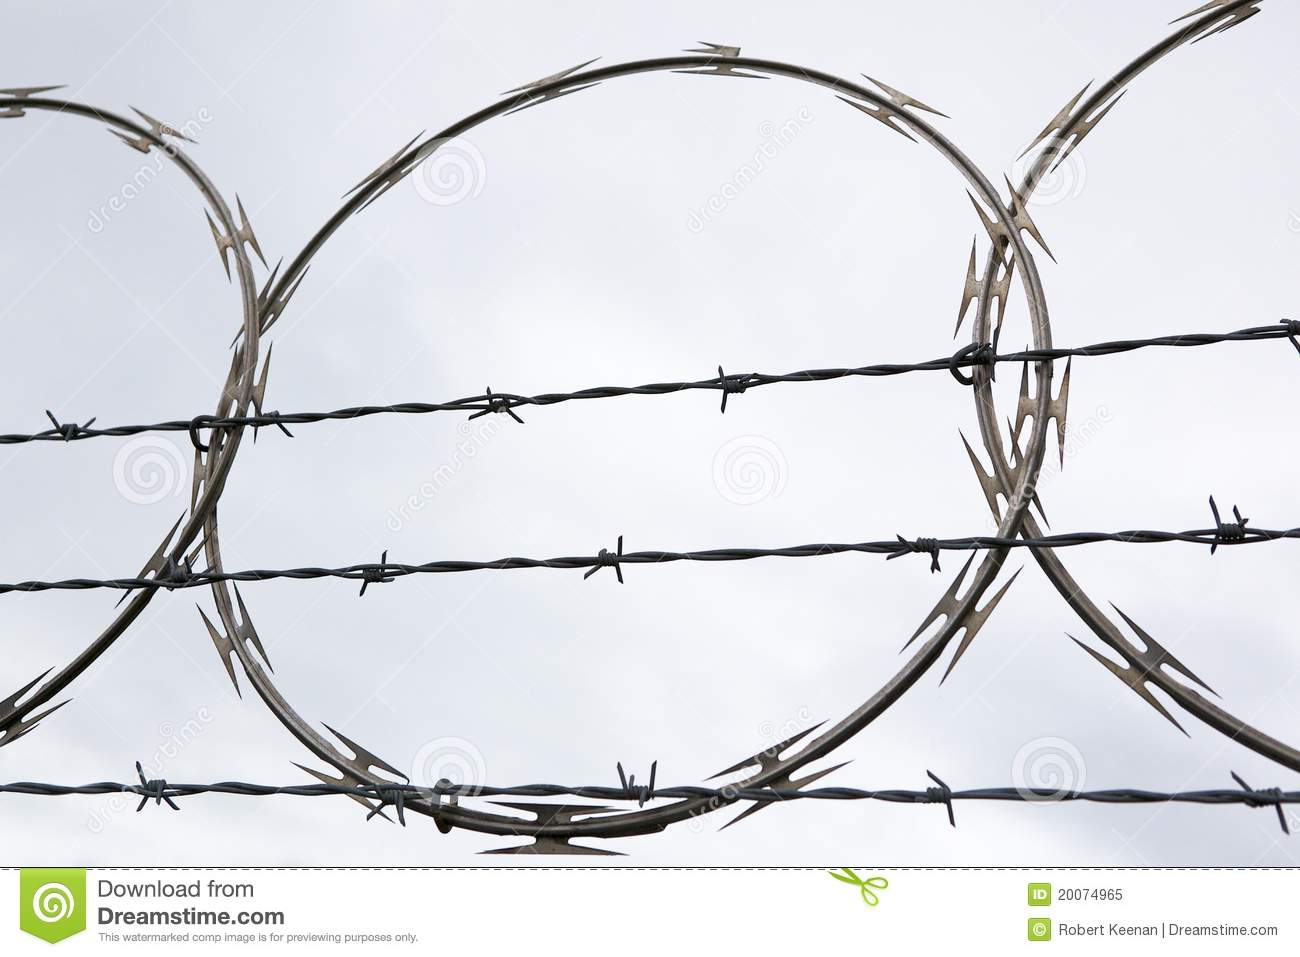 Natsy Looking Barbed Wire stock image. Image of clouds - 20074965